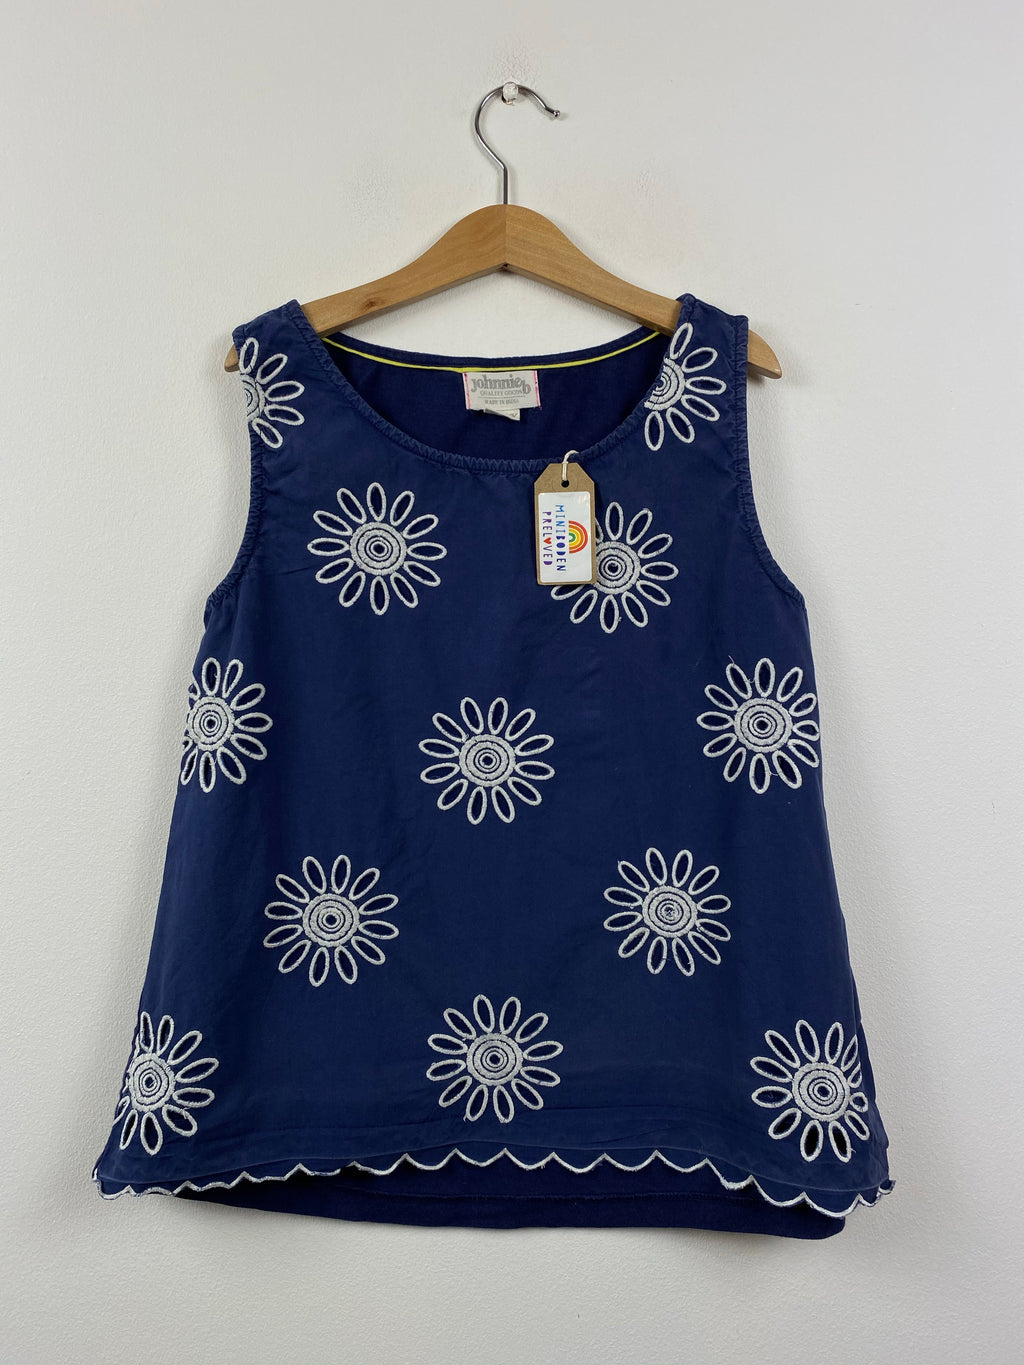 Navy Broderie Anglaise flower Design Sleeveless Top (9-10 Years)